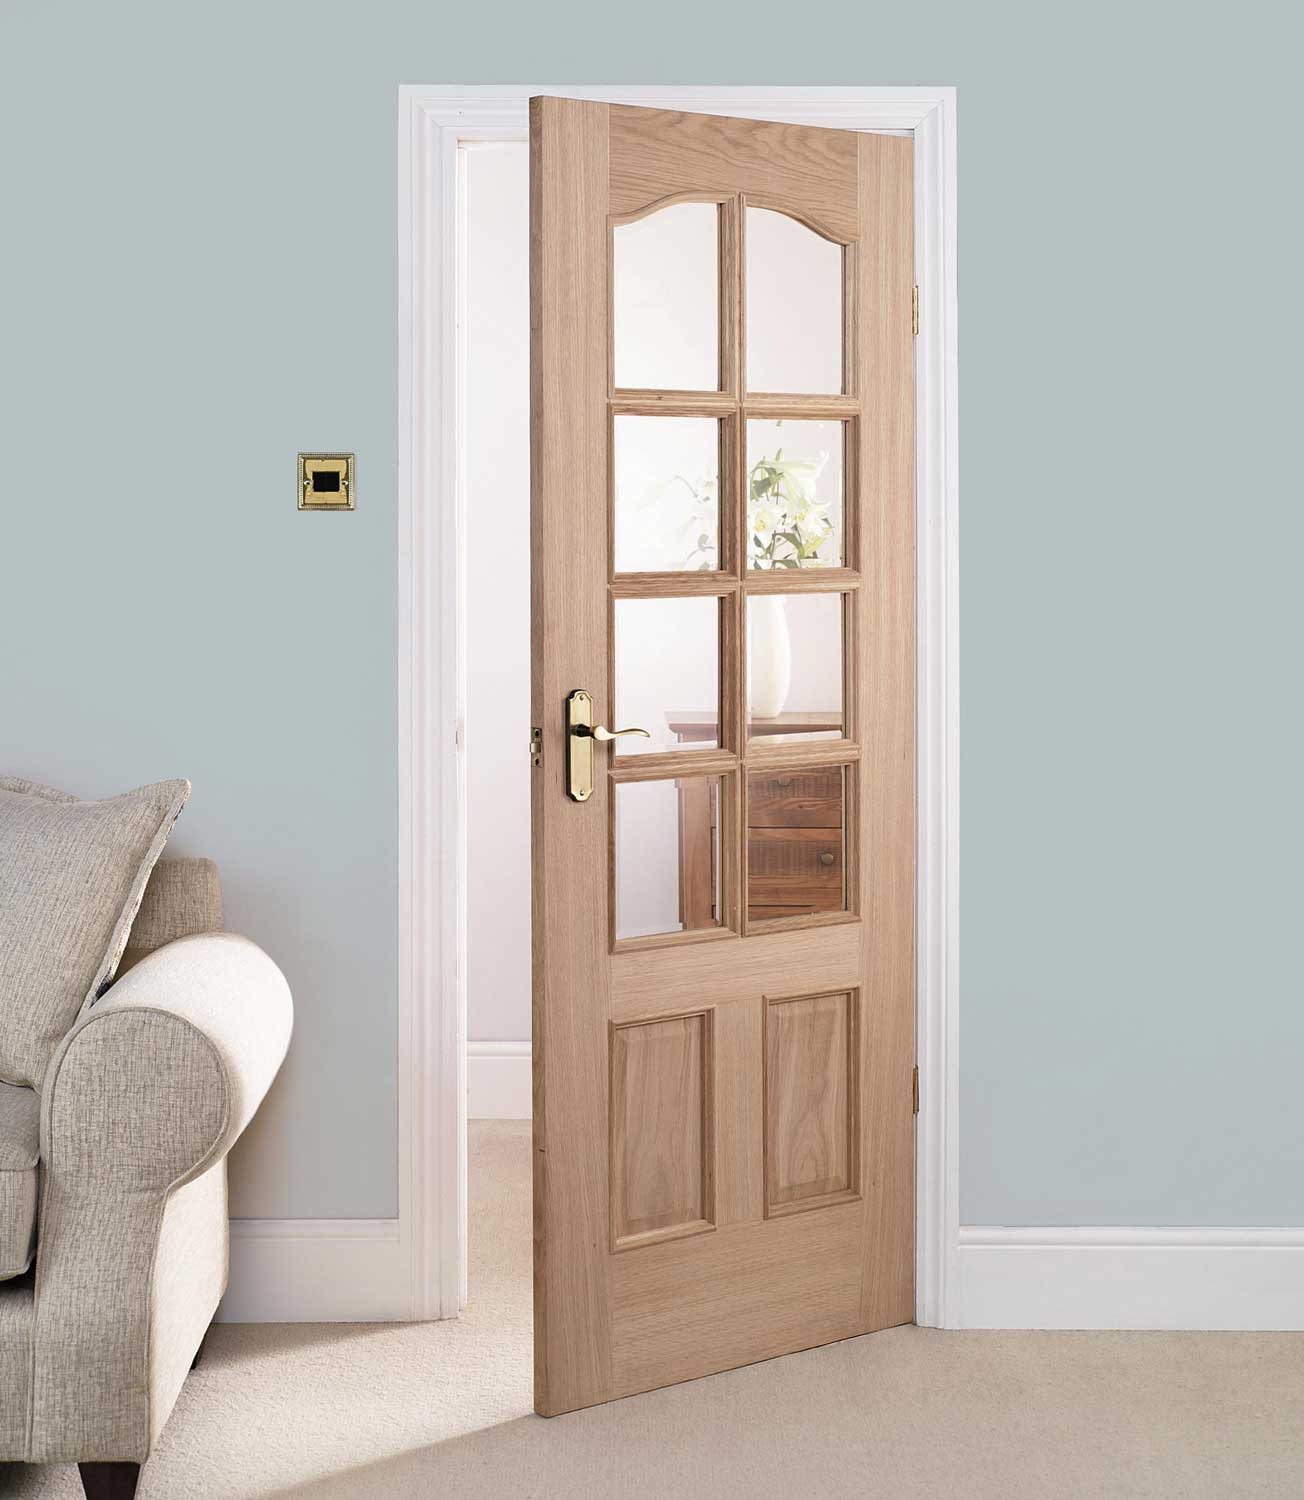 30 X 80 Interior Door With Glass Are Chosen Often For Living Rooms